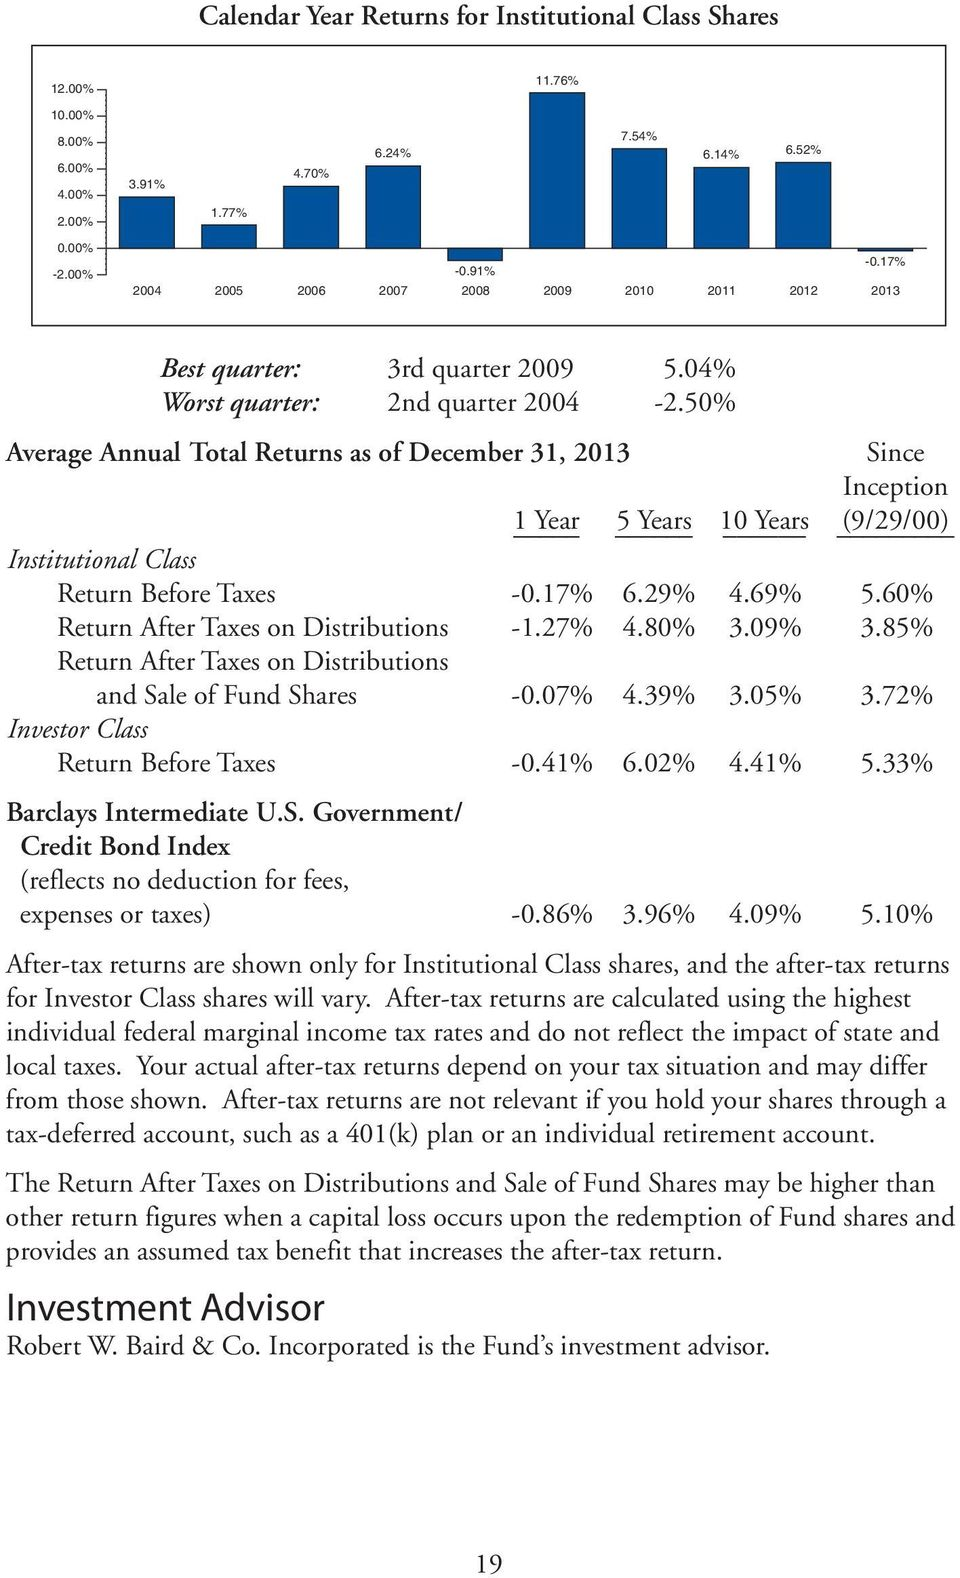 50% Average Annual Total Returns as of December 31, 2013 Since Inception 1 Year 5 Years 10 Years (9/29/00) Institutional Class Return Before Taxes -0.17% 6.29% 4.69% 5.